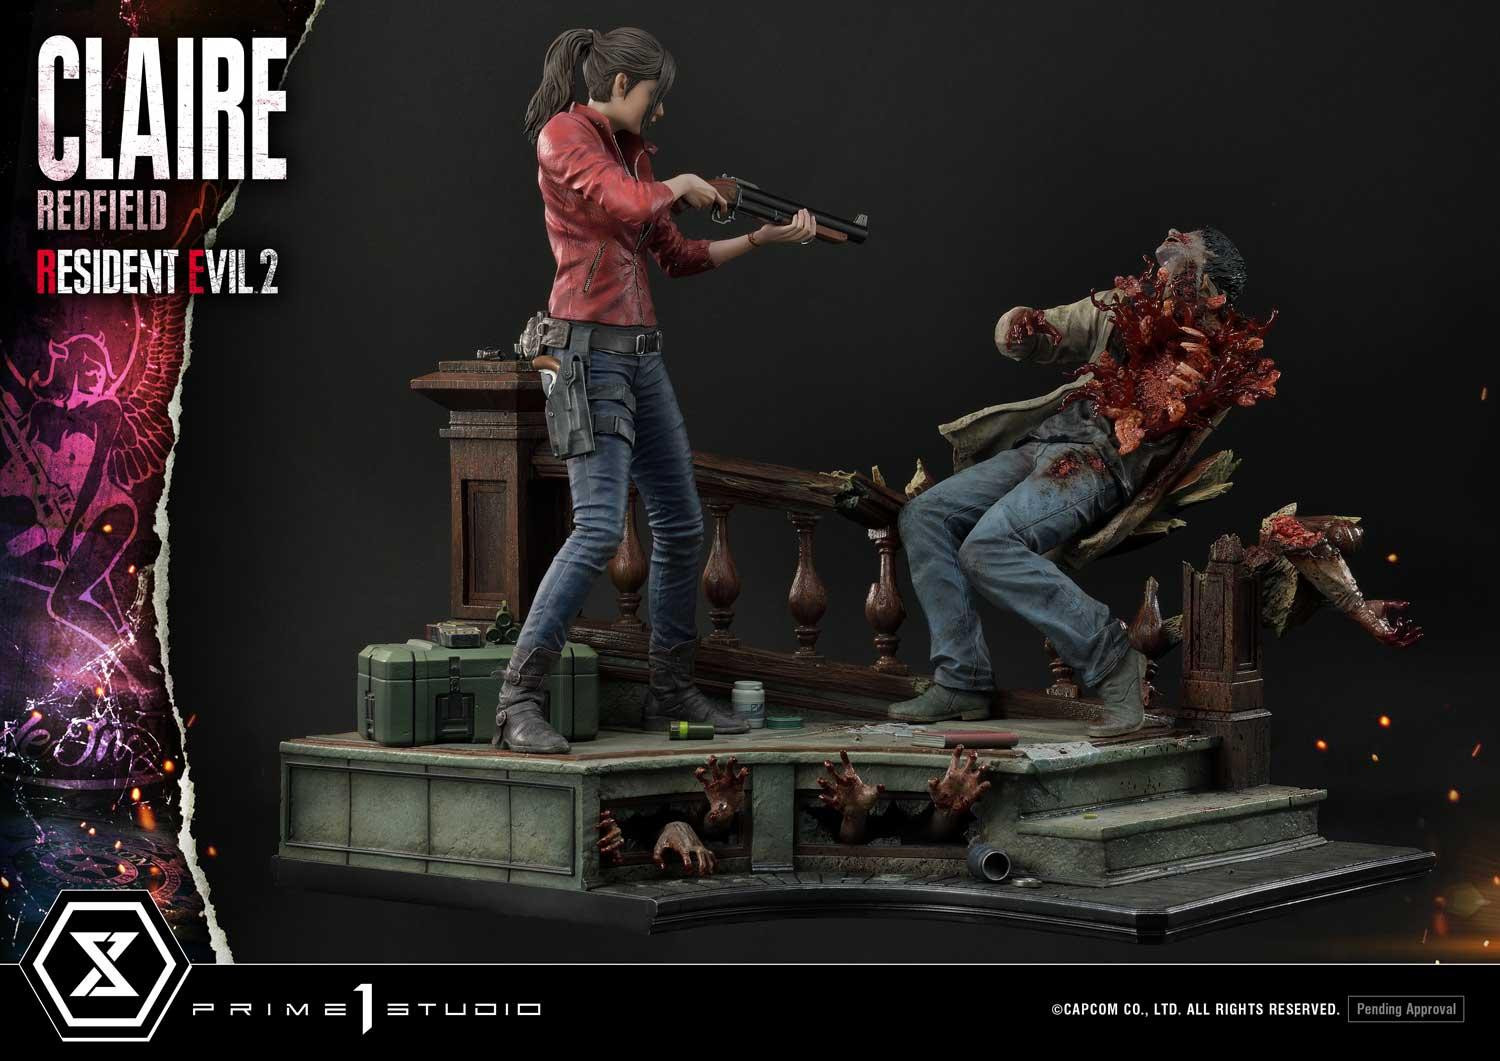 Claire Redfield Resident Evil 2 Statues